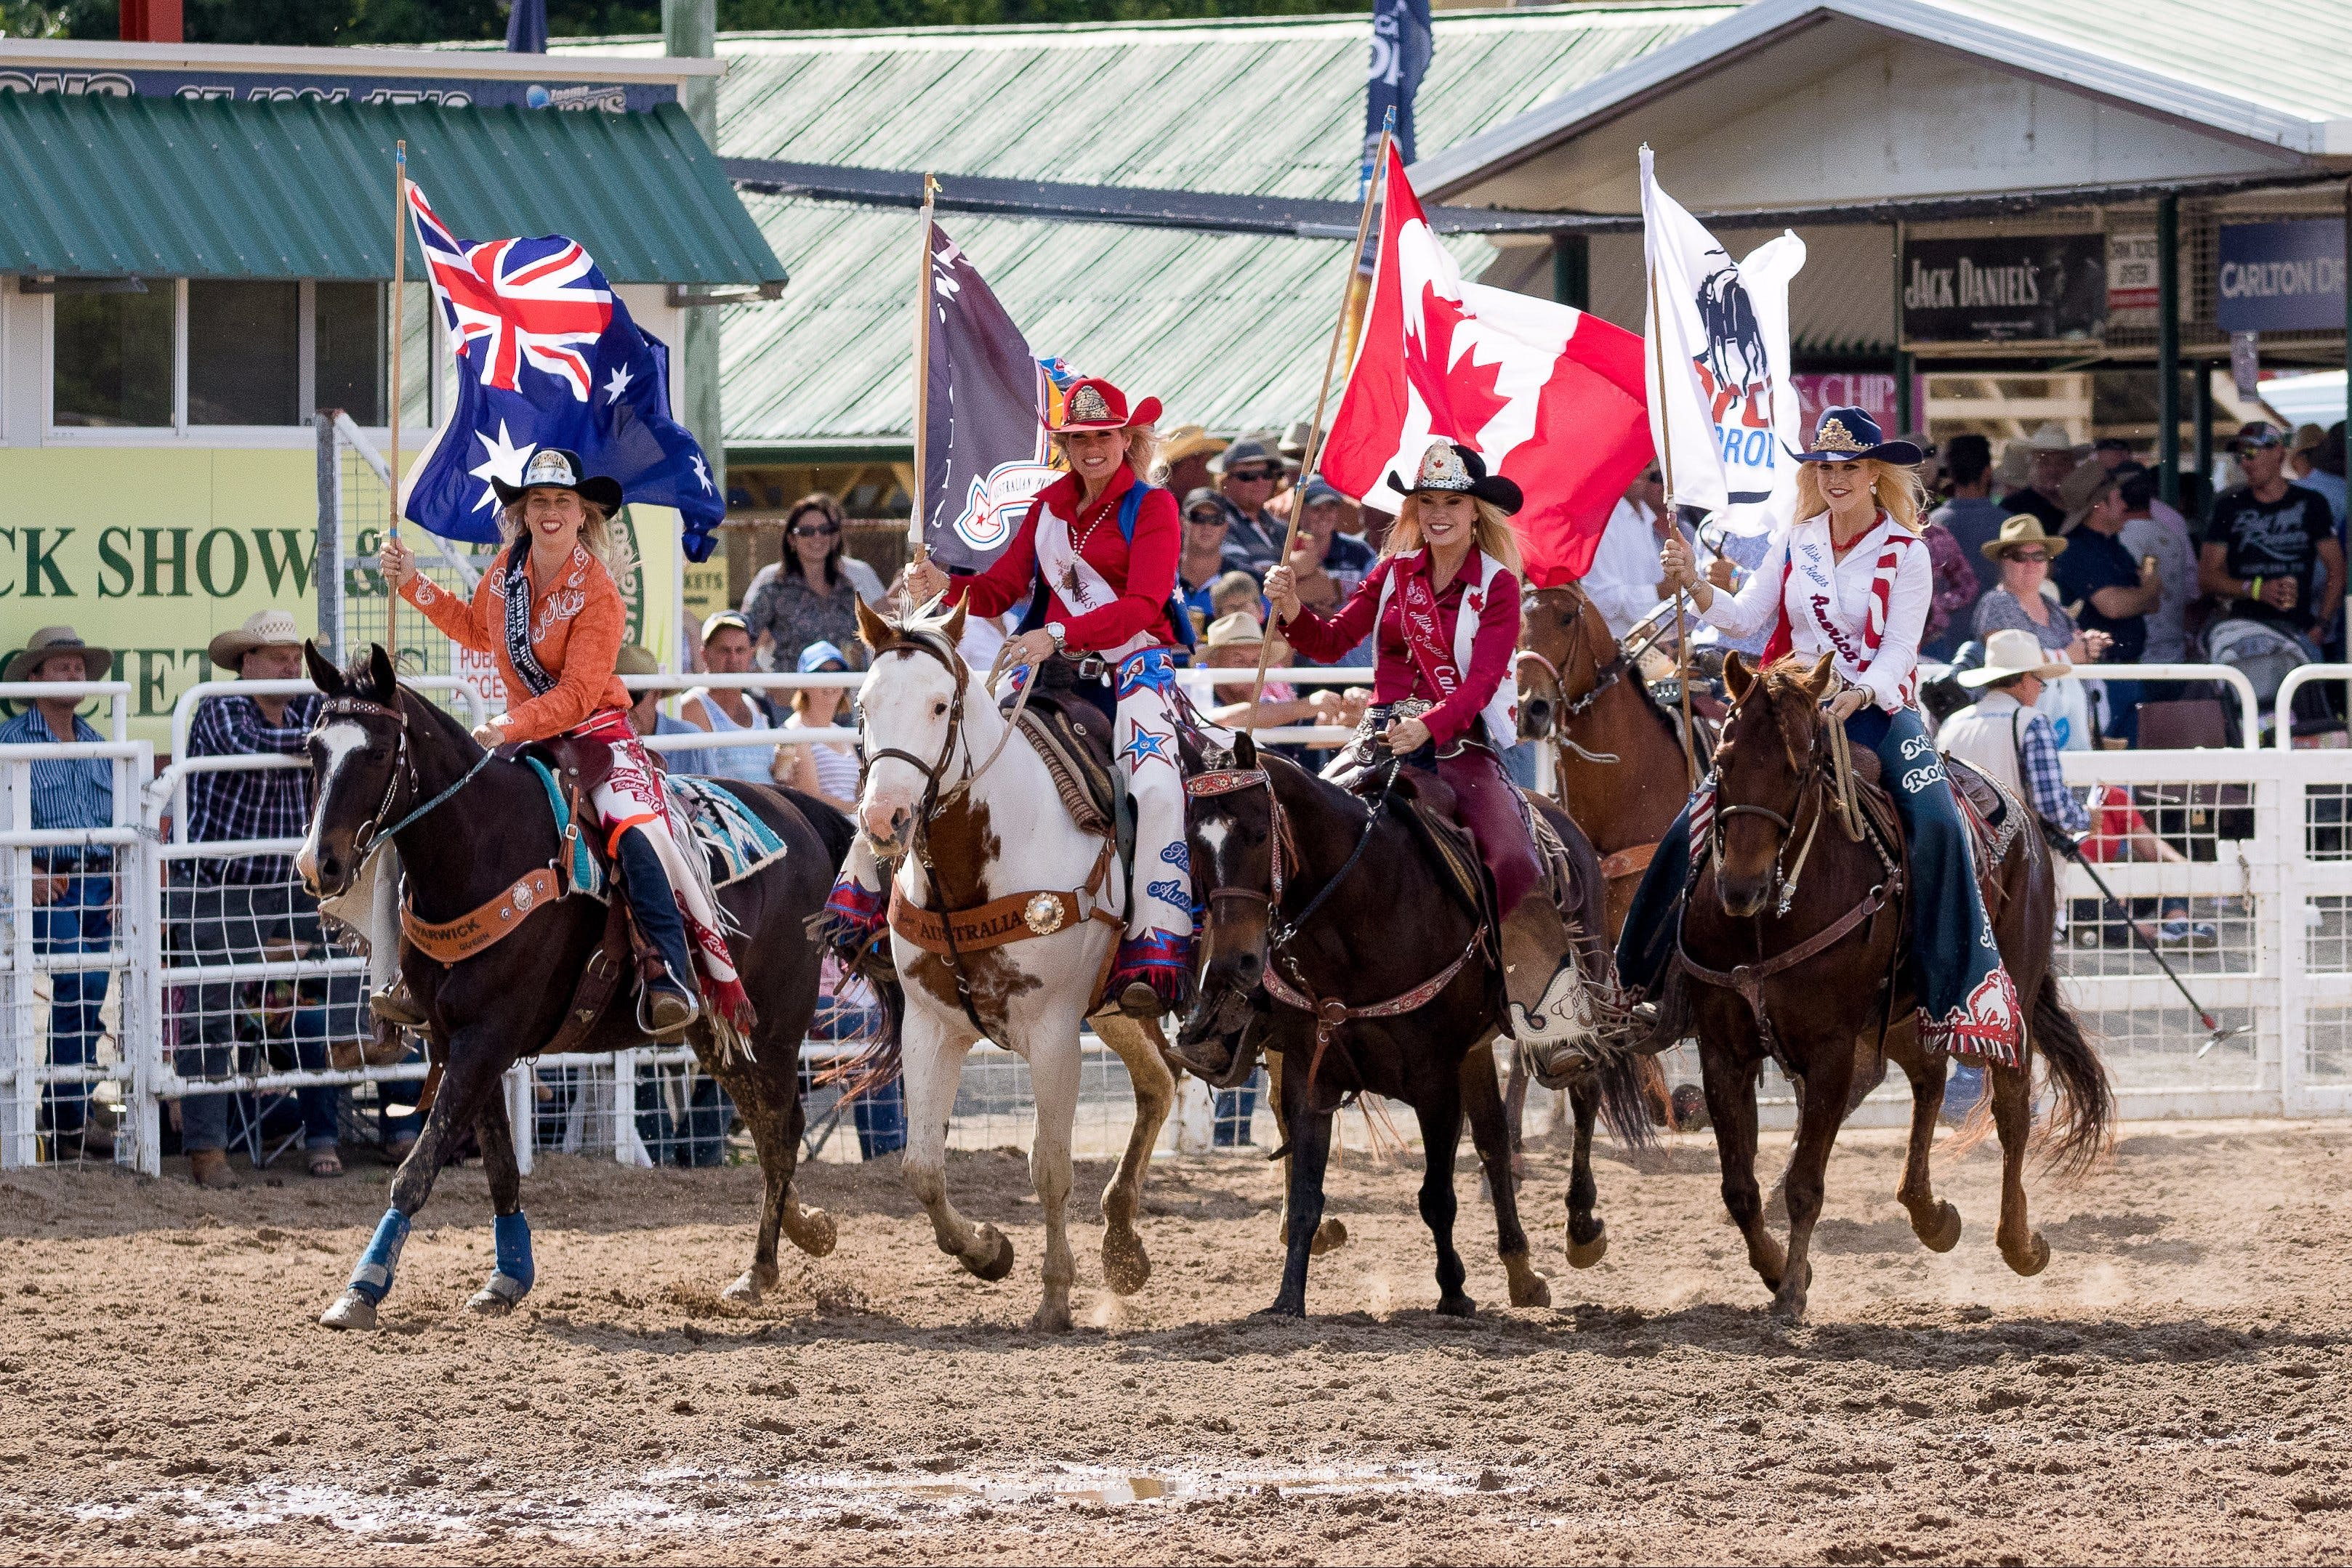 Warwick Rodeo National APRA National Finals and Warwick Gold Cup Campdraft - Accommodation Bookings